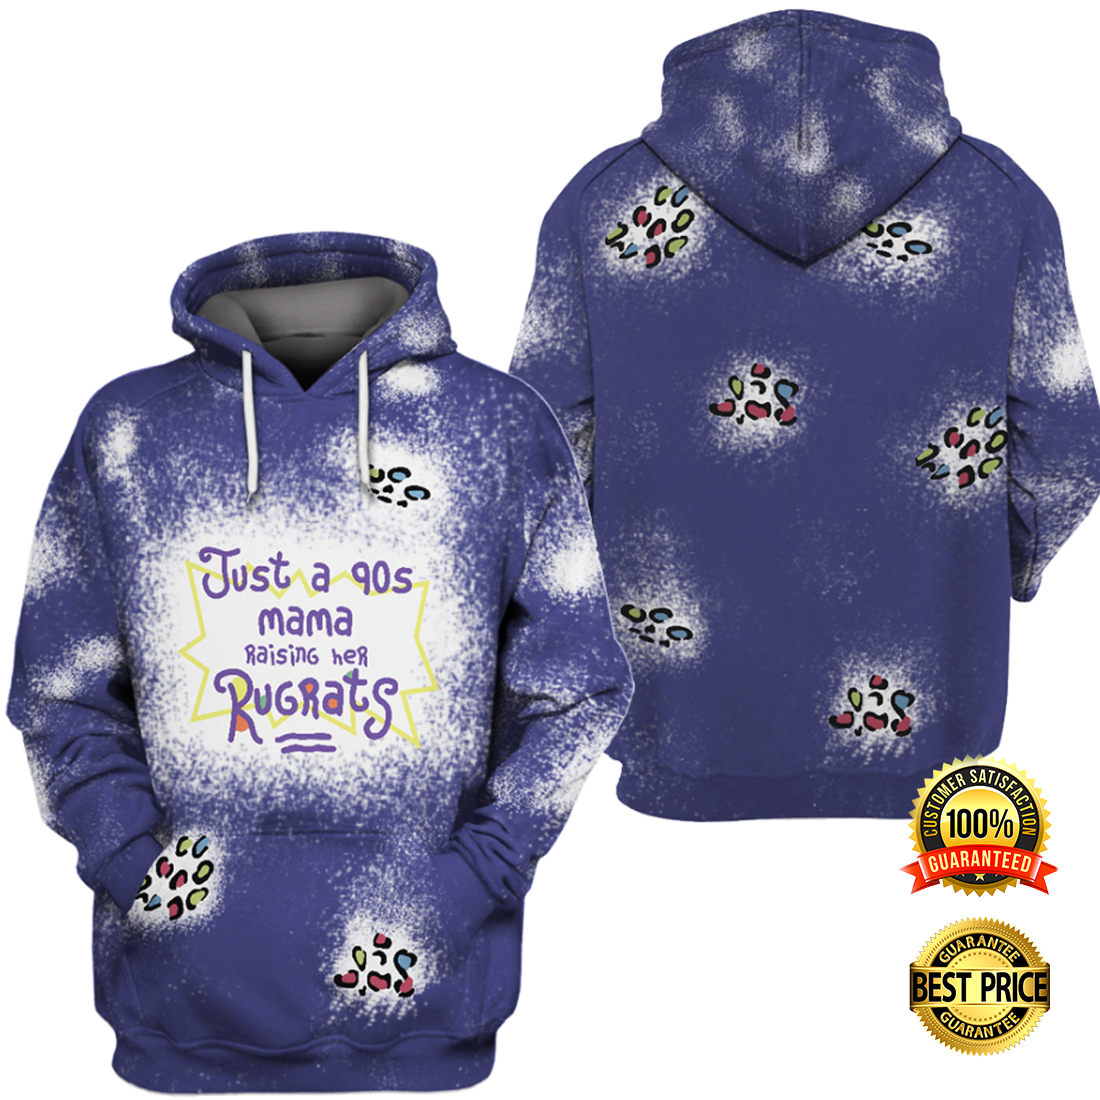 JUST A 90S MAMA RAISING HER RUGRATS ALL OVER PRINTED 3D HOODIE 6